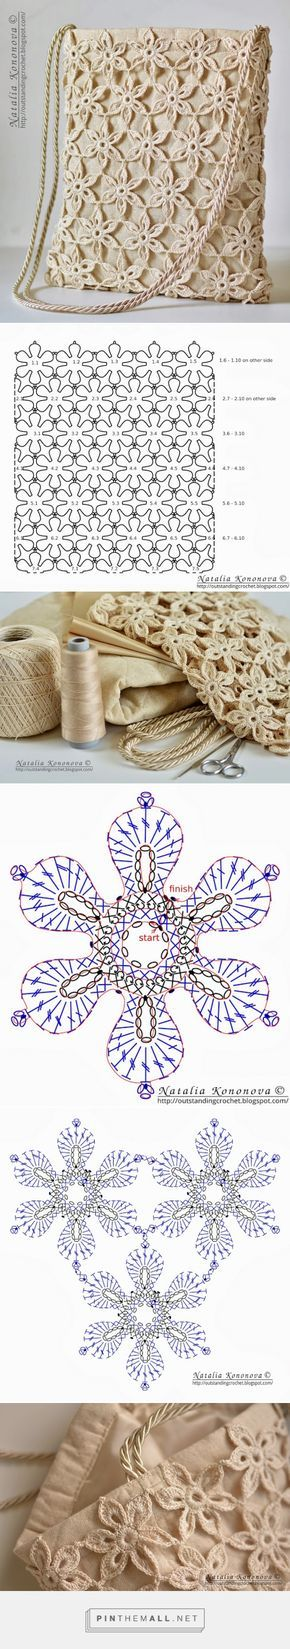 640 best CROCHET Y TEJIDO ESPECIAL images on Pinterest | Crochet ...